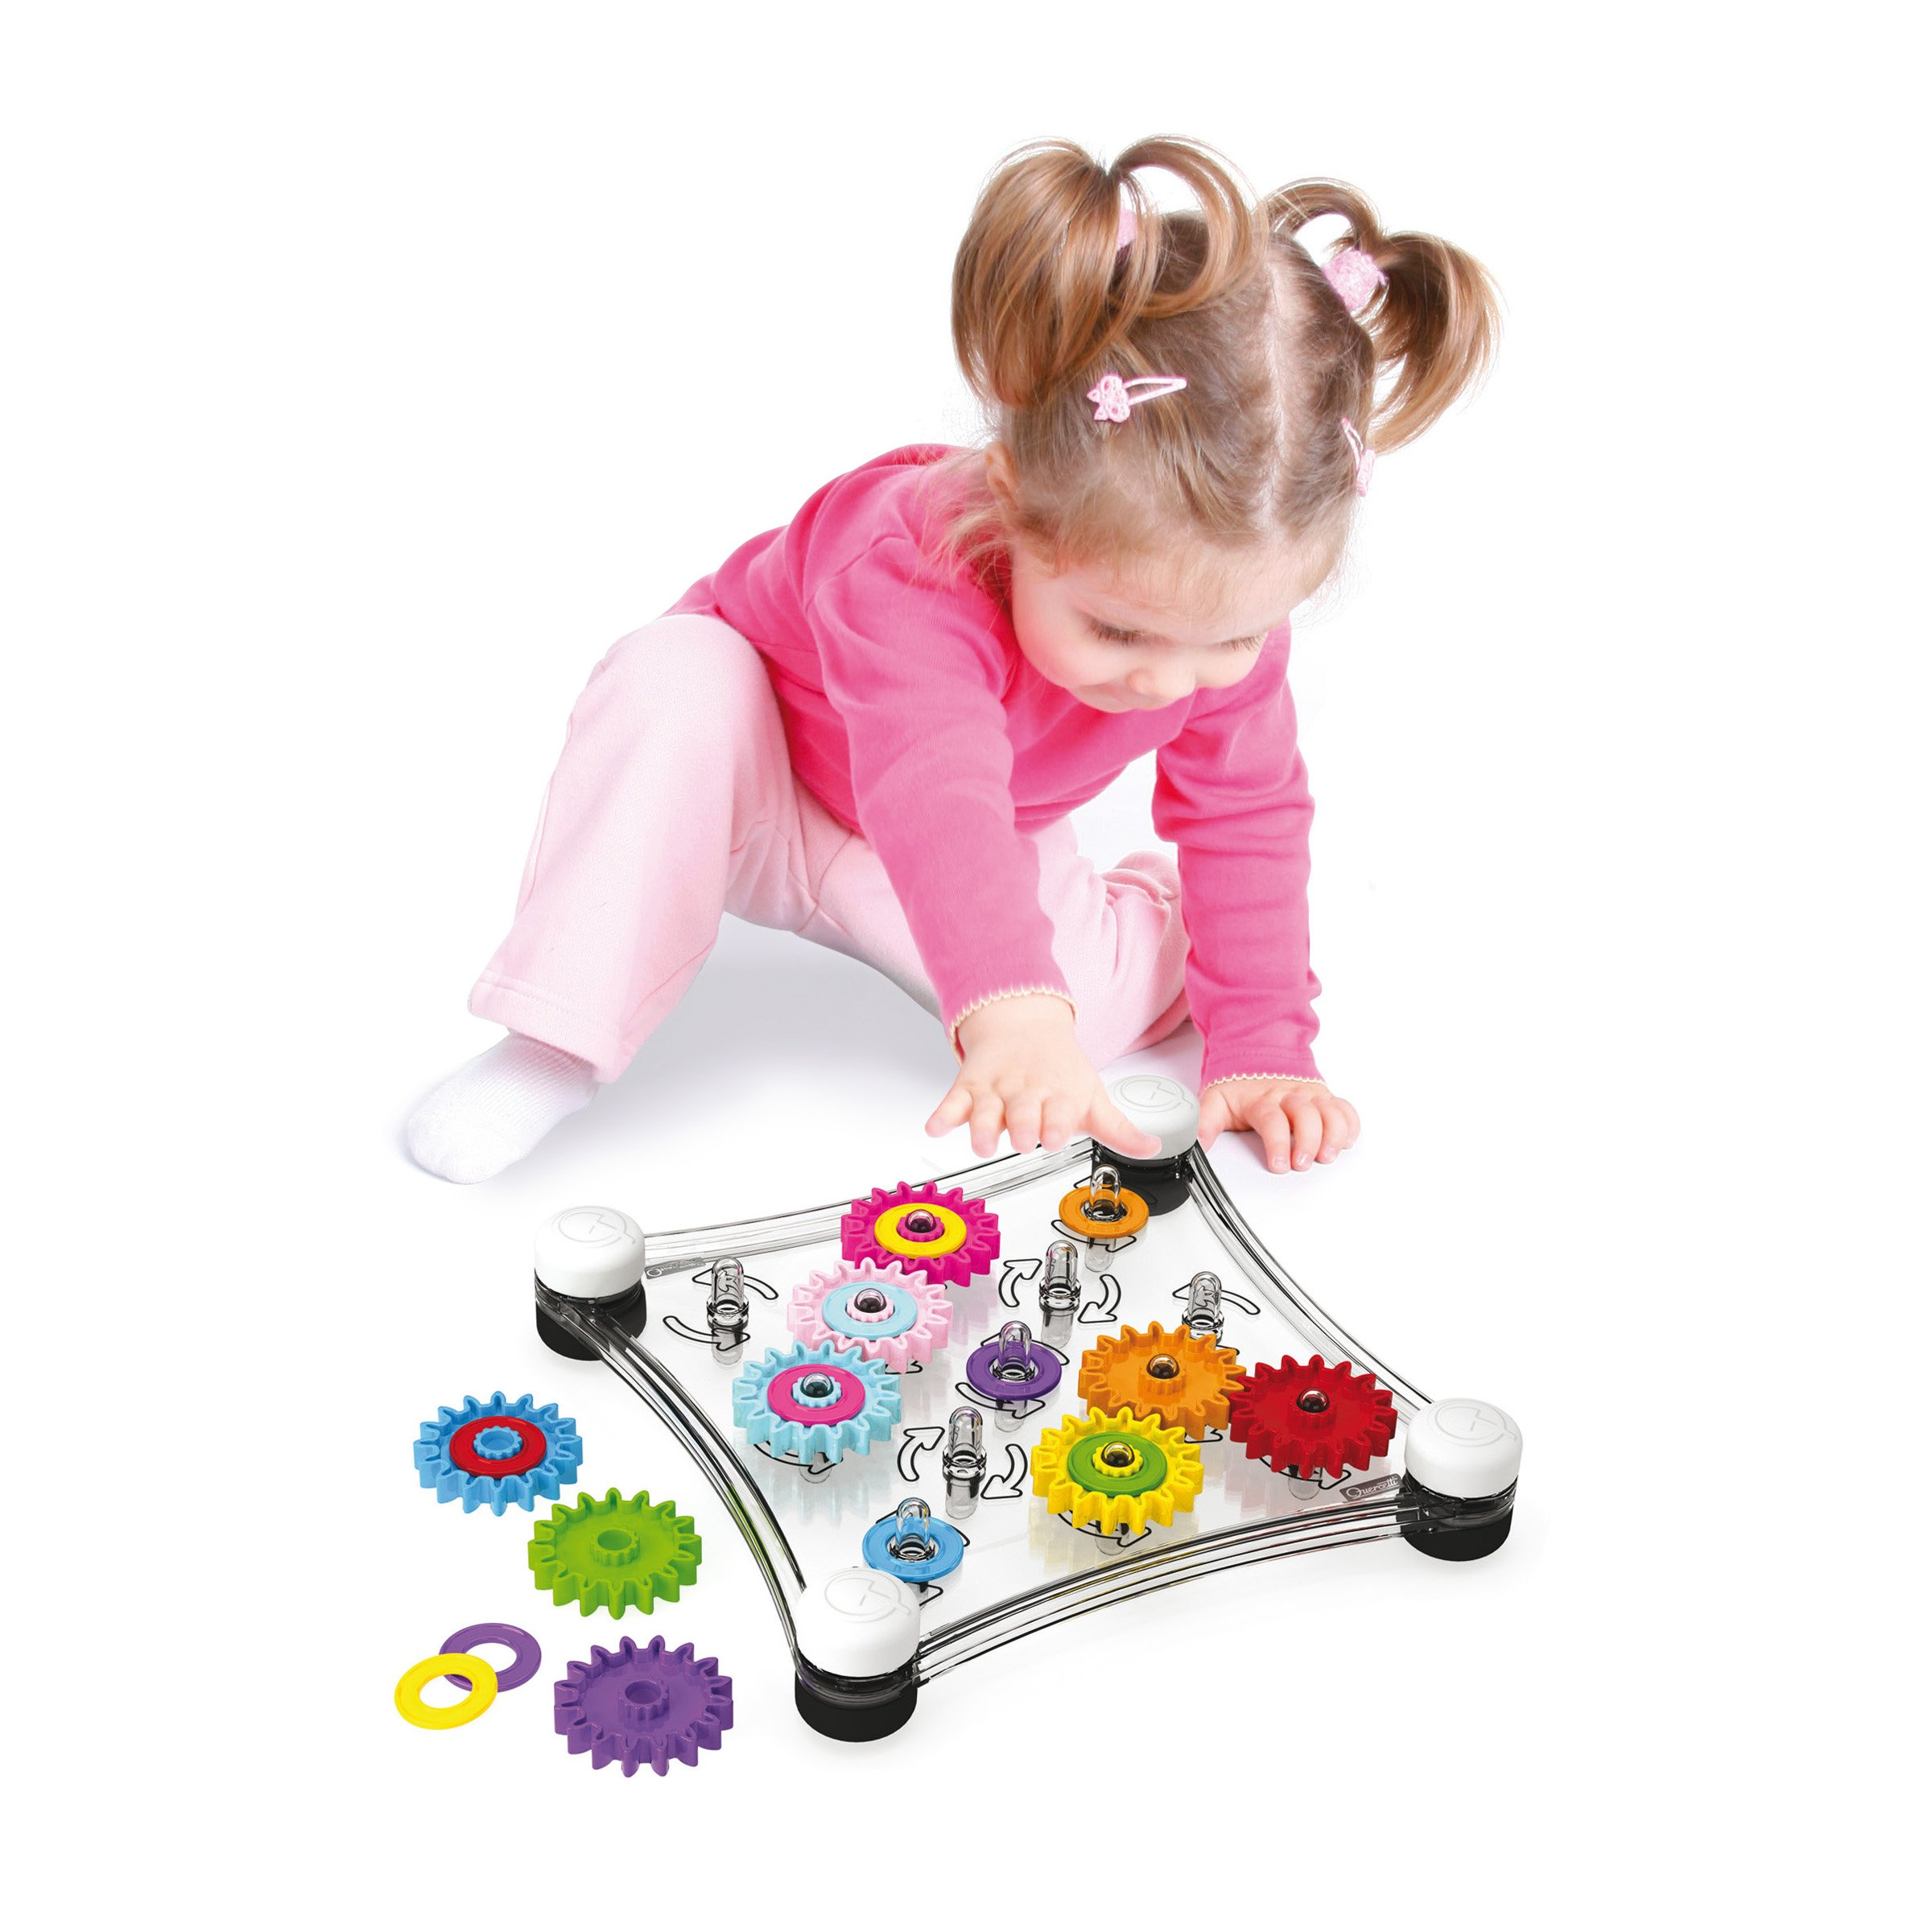 Quercetti Georello Junior - Double Sided Spinning Gear Play Set by Quercetti (Image #3)